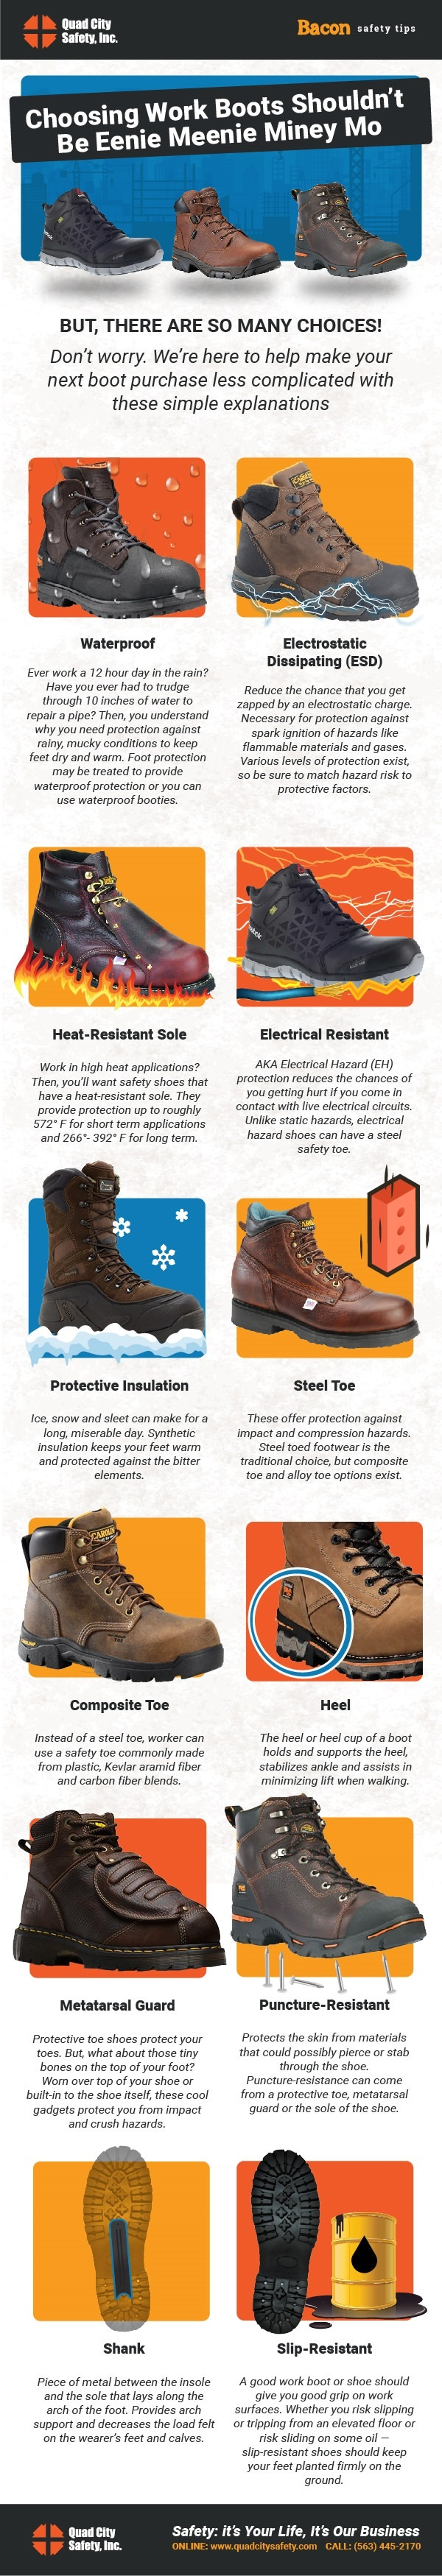 Choosing Work Boots Shouldn't Be Eenie Meenie Miney Mo   But, there are so many choices! Don't worry. We're here to help make your next boot purchase less complicated with these simple explanations.    Electrical Resistant AKA Electrical Hazard (EH) protection reduces the chances of you getting hurt if you come in contact with live electrical circuits. Unlike static hazards, electrical hazard shoes can have a steel safety toe.    Electrostatic Dissipating (ESD) Reduce the chance that you get zapped by an electrostatic charge. Necessary for protection against spark ignition of hazards like flammable materials and gases. Various levels of protection exist, so be sure to match hazard risk to protective factors.   Heat-Resistant Sole Work in high heat applications? Then, you'll want safety shoes that have a heat-resistant sole. They provide protection up to roughly 572° F for short term applications and 266°- 392° F for long term.   Waterproof Ever work a 12 hour day in the rain? Have you ever had to trudge through 10 inches of water to repair a pipe? Then, you understand why you need protection against rainy, mucky conditions to keep feet dry and warm. Foot protection may be treated to provide waterproof protection or you can use waterproof booties.    Protective Insulation Ice, snow and sleet can make for a long, miserable day. Synthetic insulation keeps your feet warm and protected against the bitter elements.   Steel Toe These offer protection against impact and compression hazards. Steel toed footwear is the traditional choice, but composite toe and alloy toe options exist.  Composite Toe Instead of a steel toe, worker can use a safety toe commonly made from plastic, Kevlar aramid fiber and carbon fiber blends.   Metatarsal Guard Protective toe shoes protect your toes. But, what about those tiny bones on the top of your foot? Worn over top of your shoe or built-in to the shoe itself, these cool gadgets protect you from impact and crush hazards.    Shank Piece of me